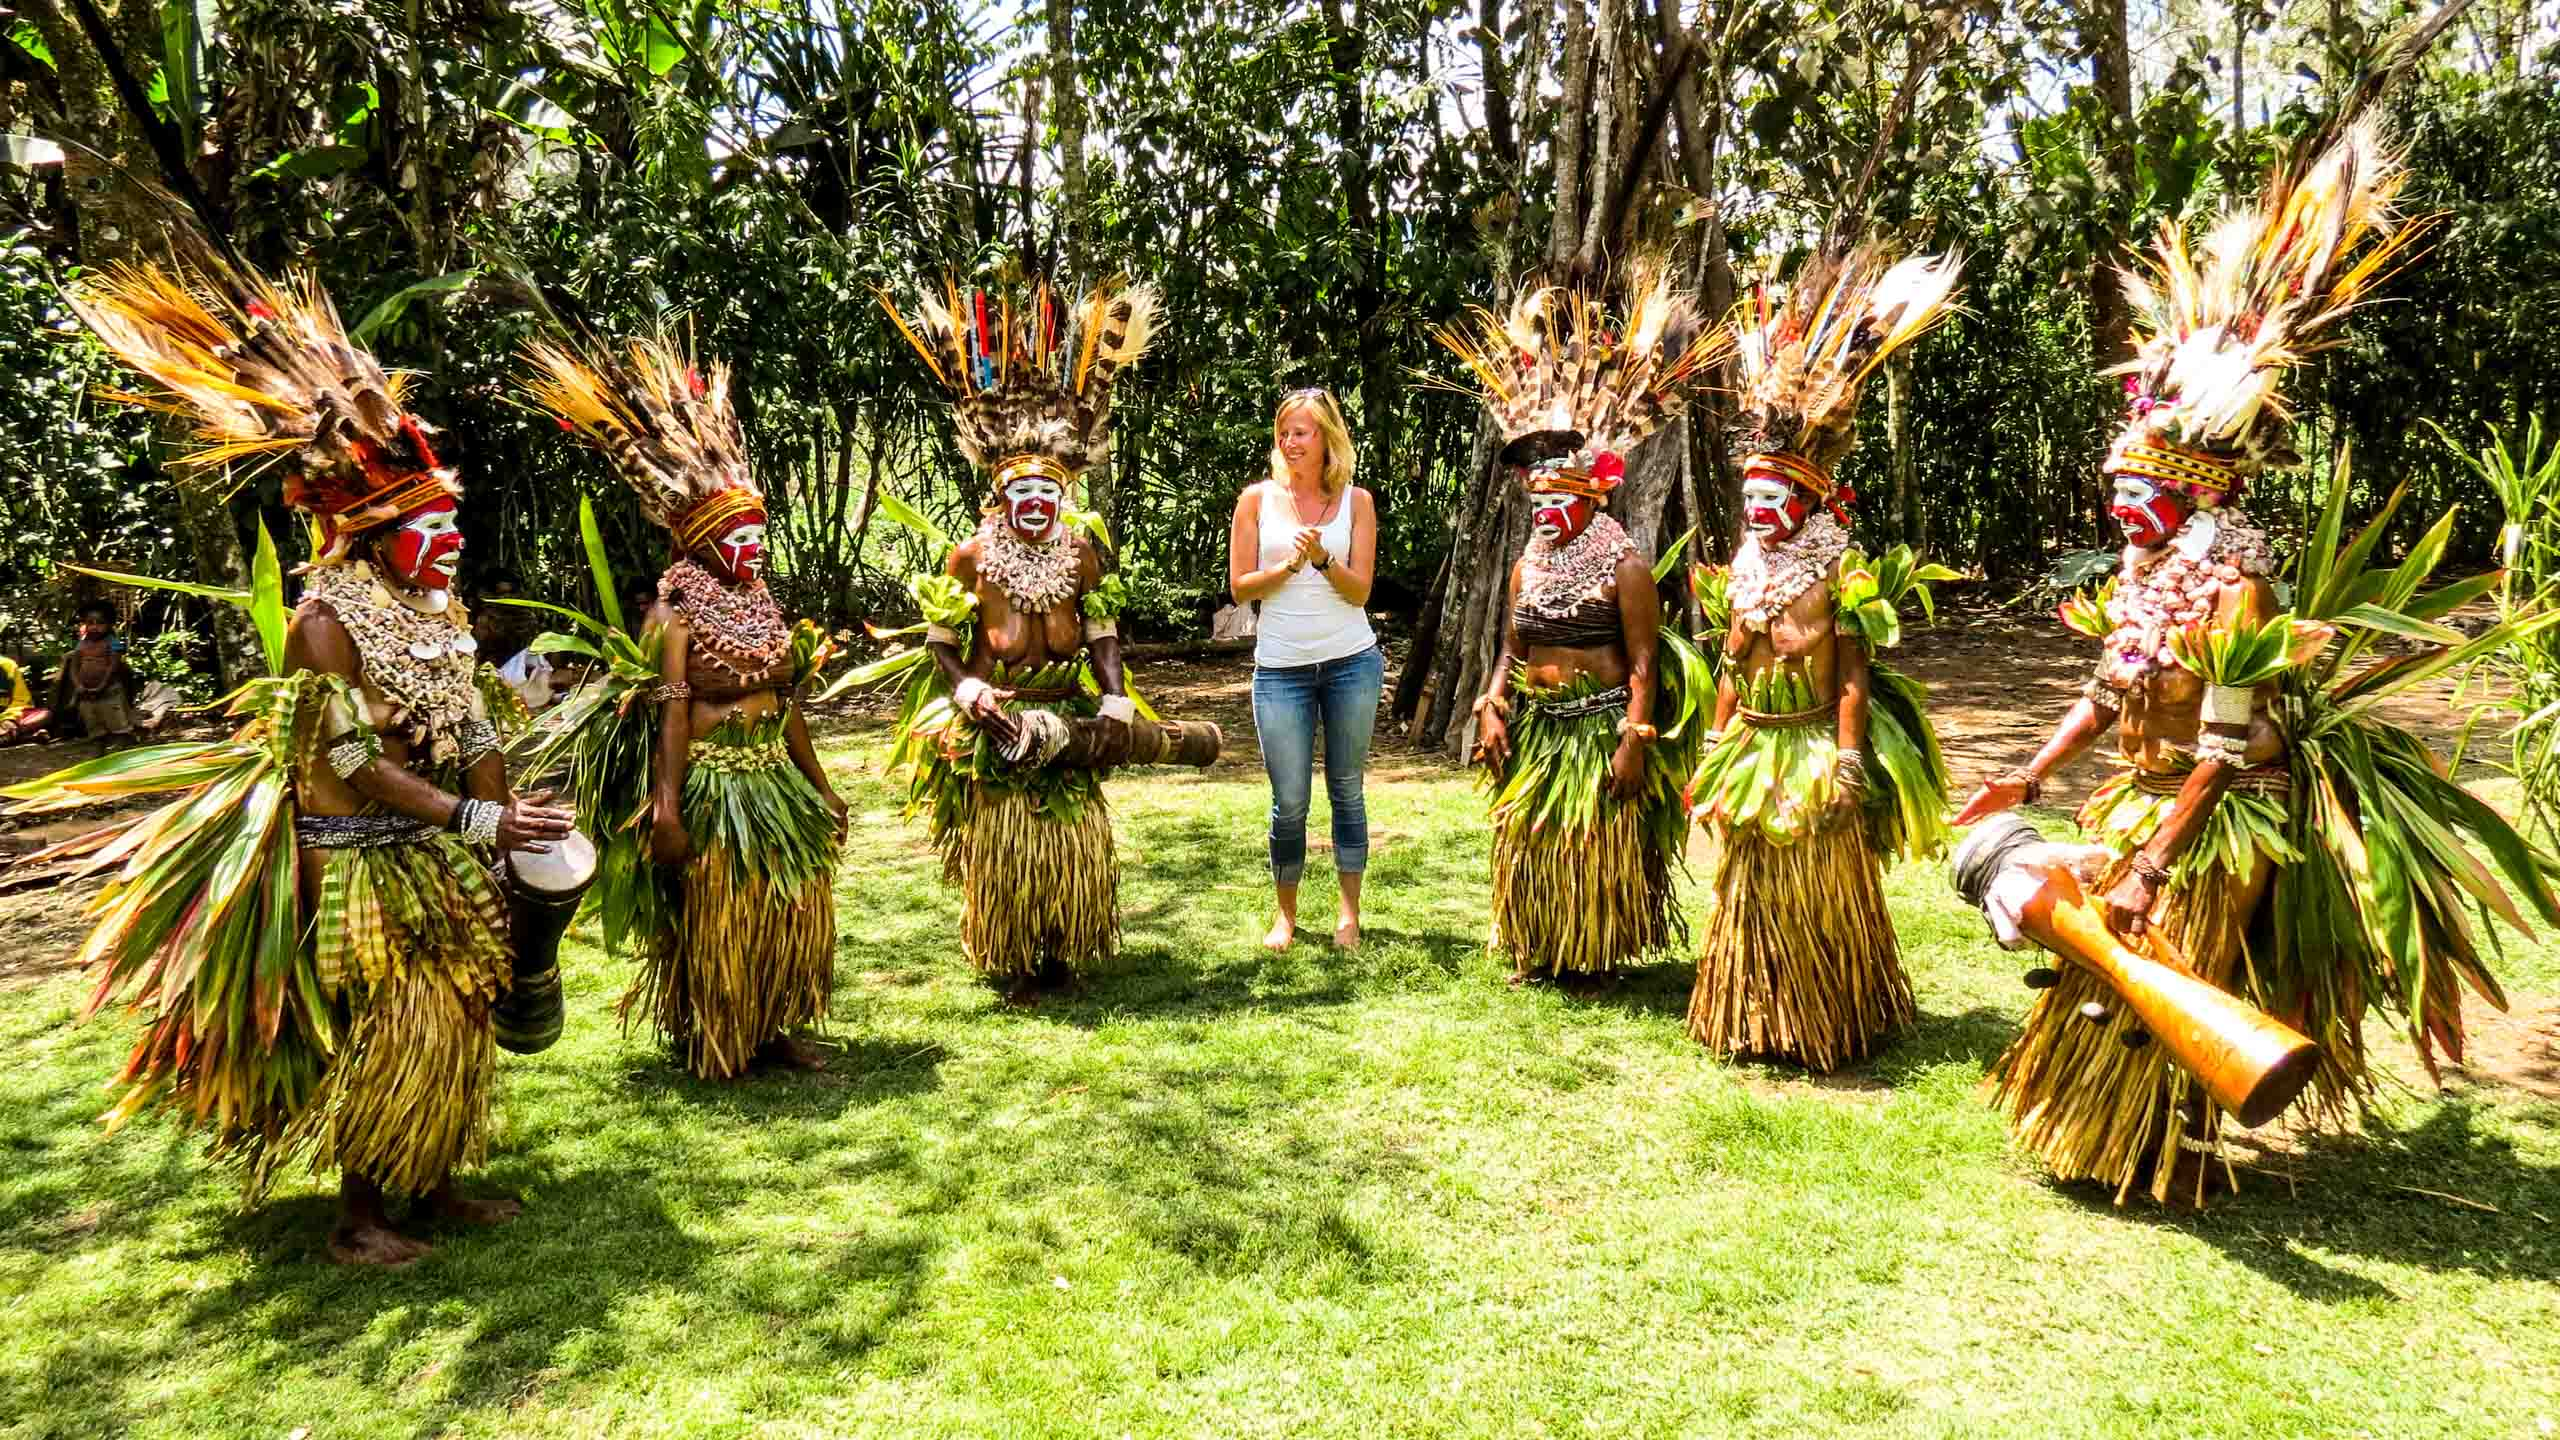 Traveler stands with group of Papua New Guinea natives